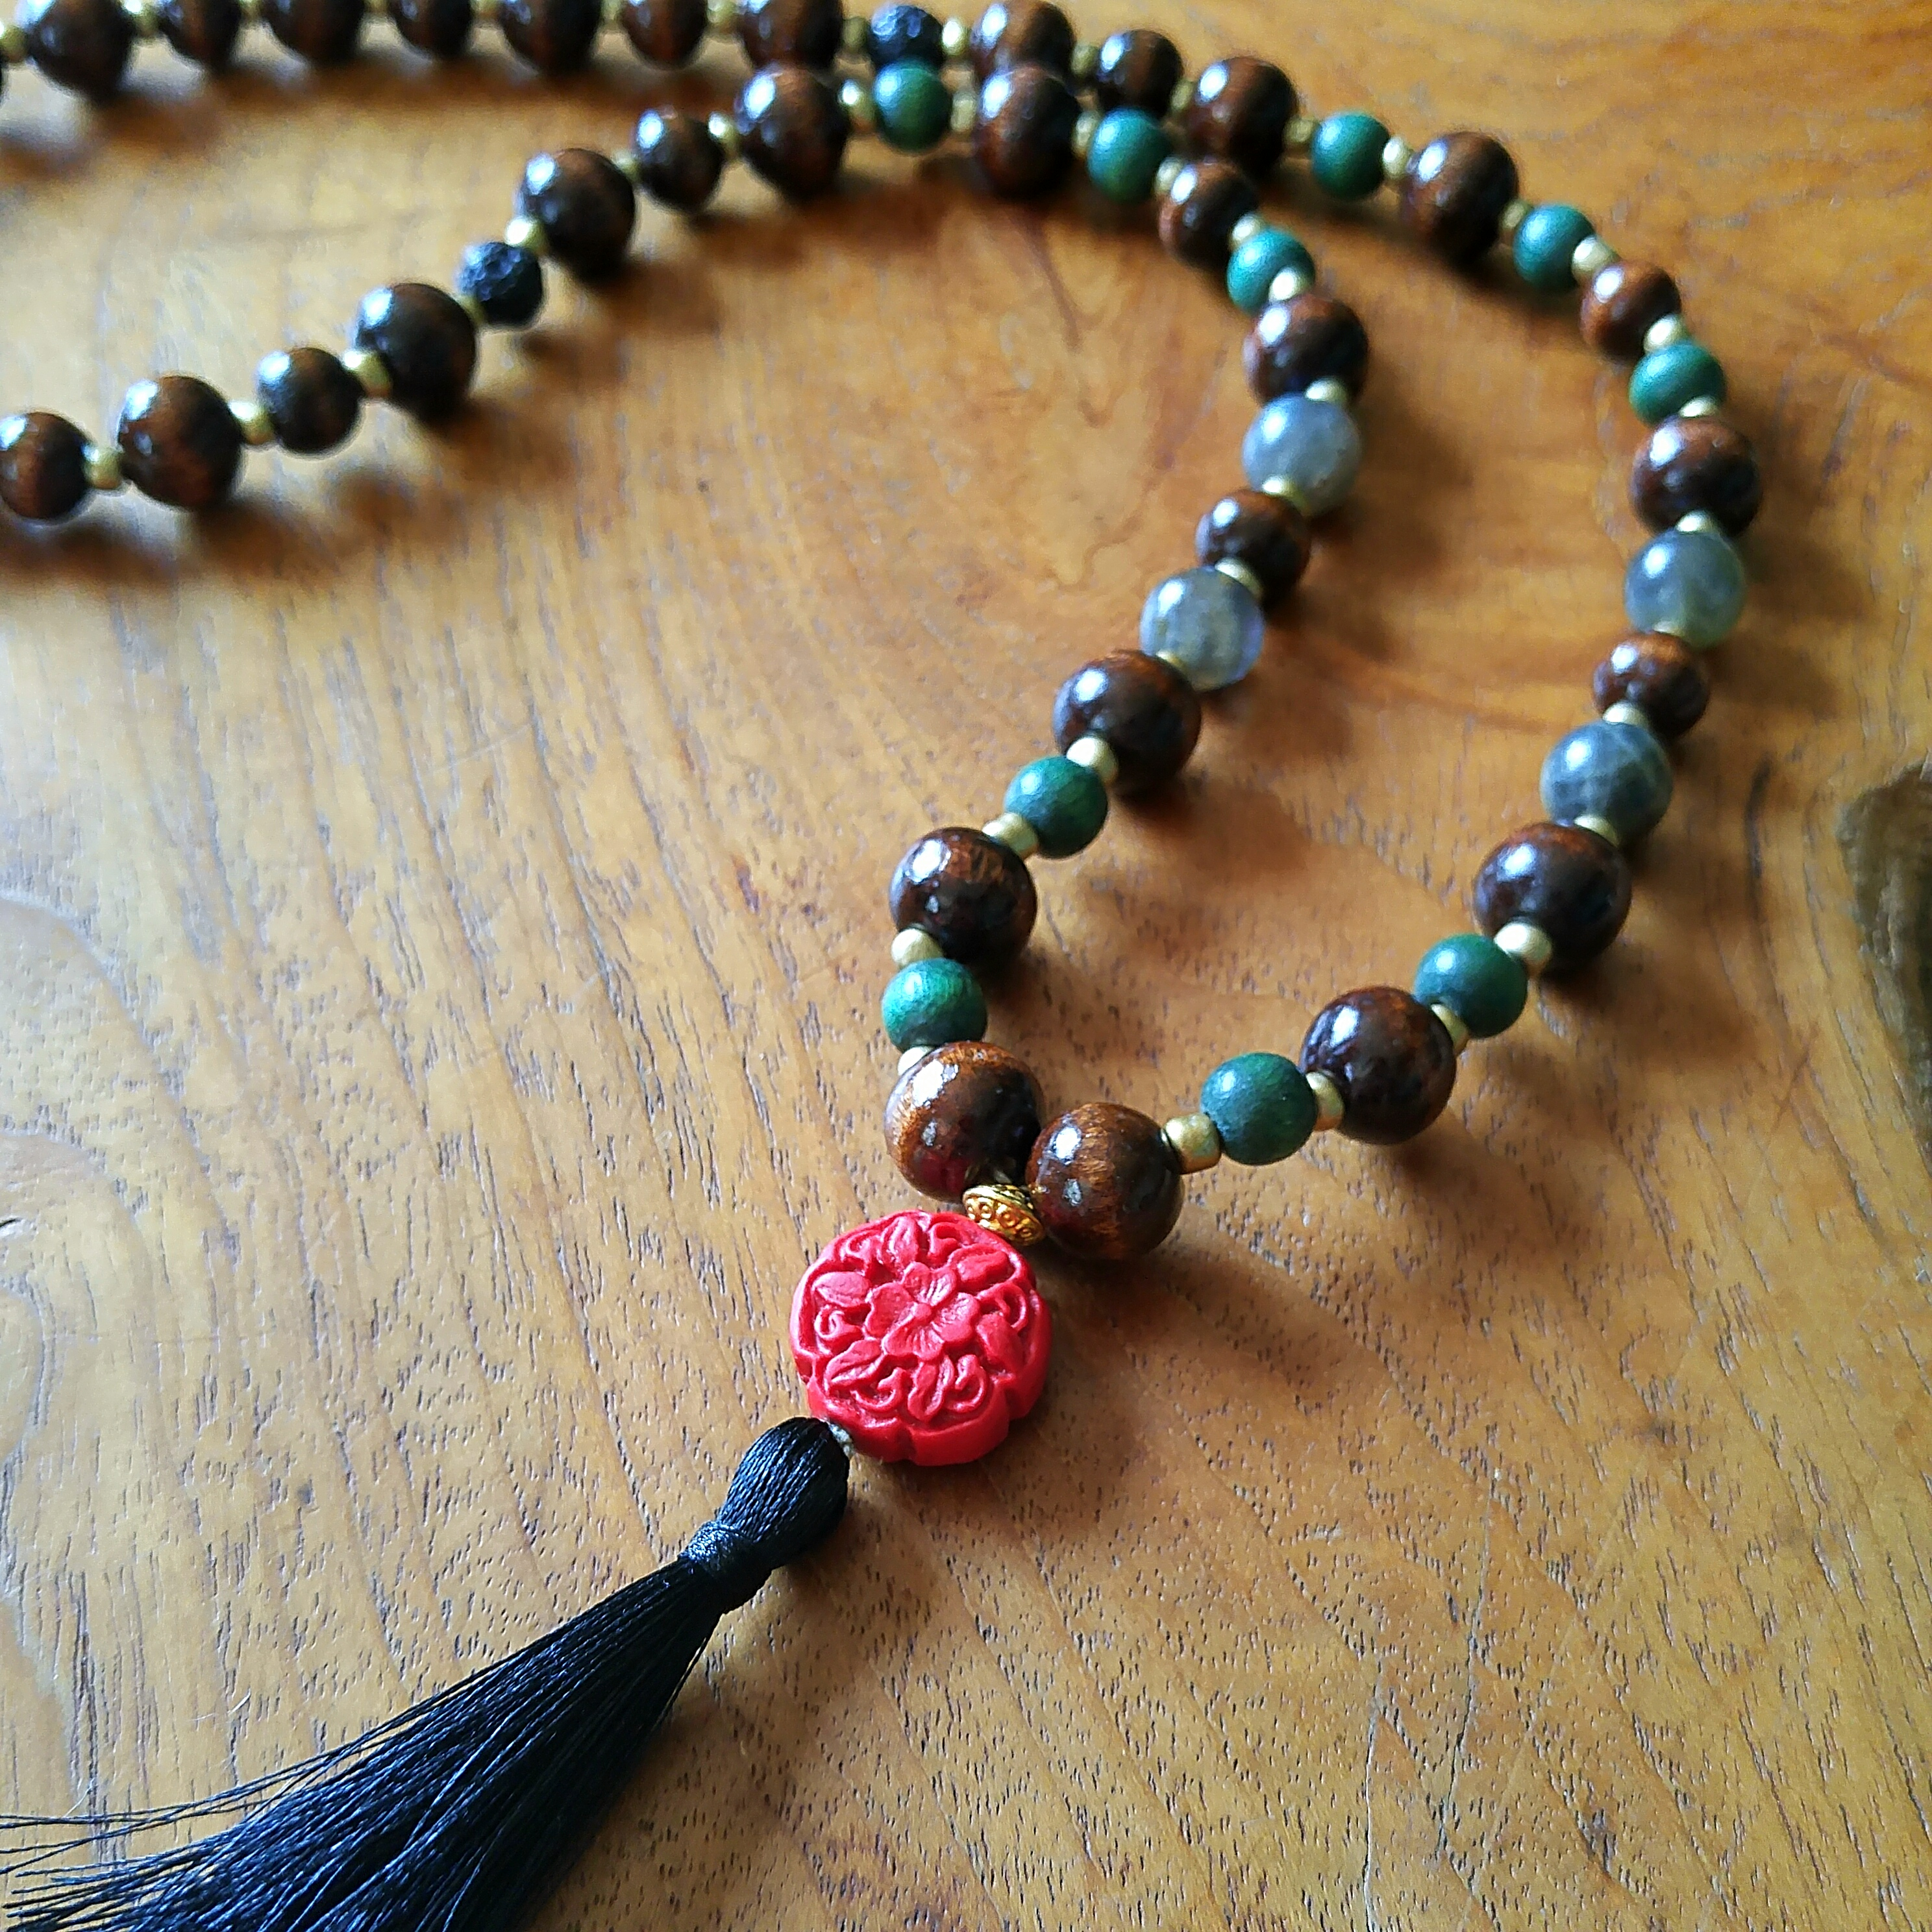 We specialize in mala making